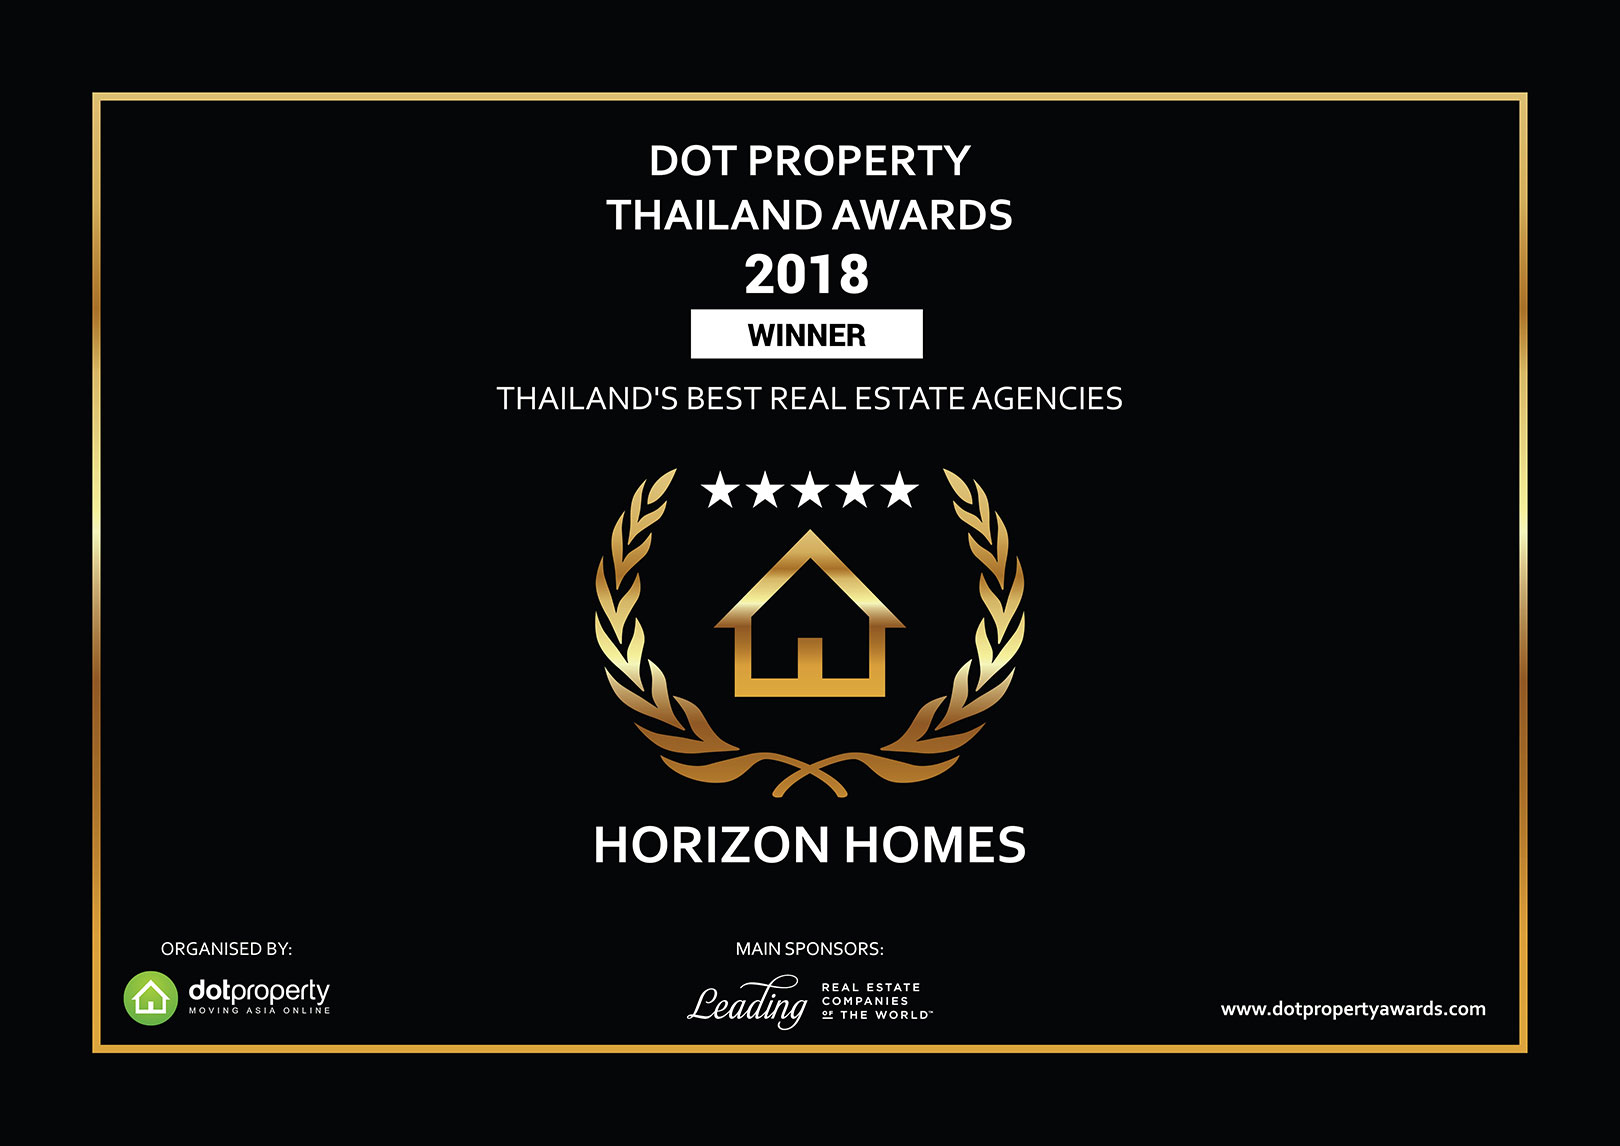 The Dot Property Thailand Award For Thailandu0027s Best Real Estate Agencies,  Awarded To Horizon Homes In 2018.